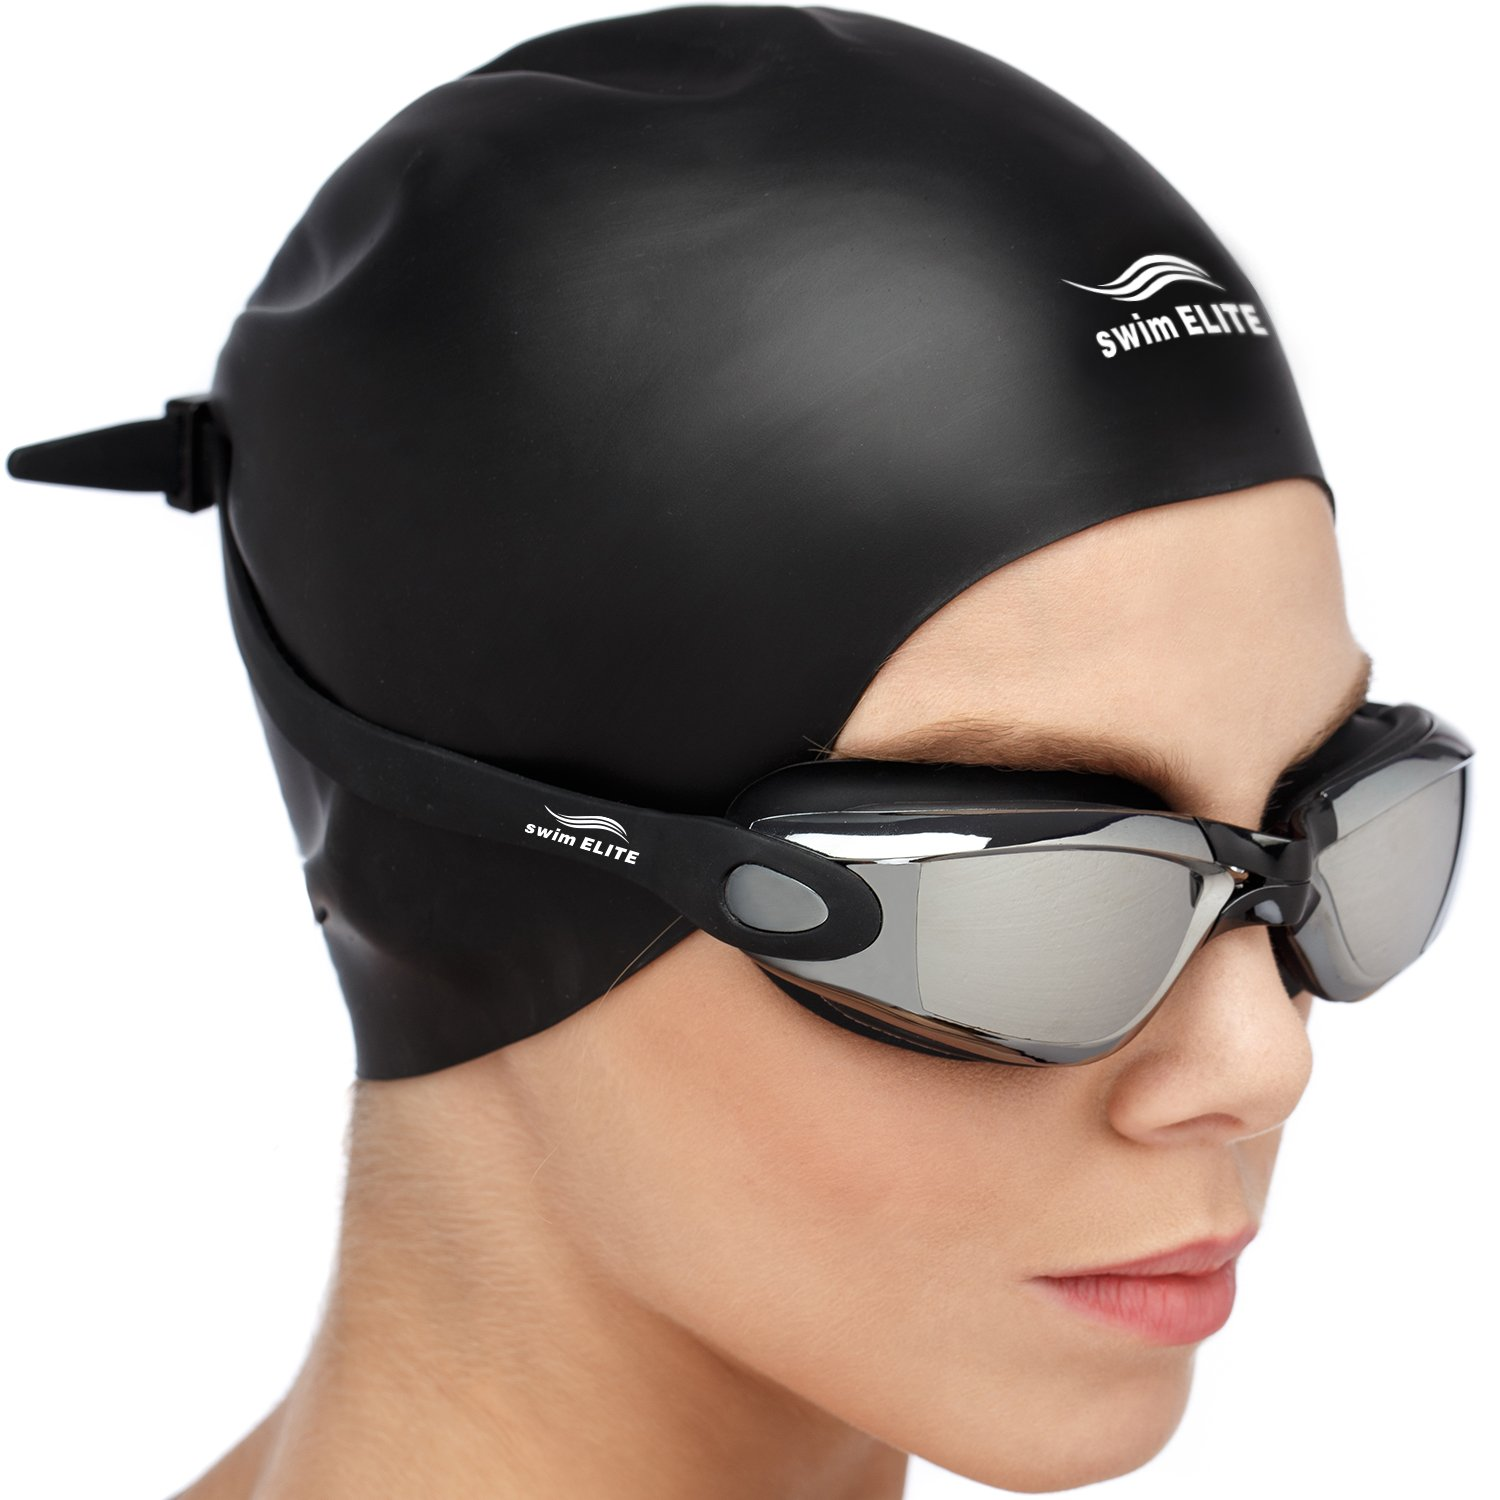 Swim Goggles Under Eye Circles: Swim Goggles + Reversible Swimming Cap + Protective Case